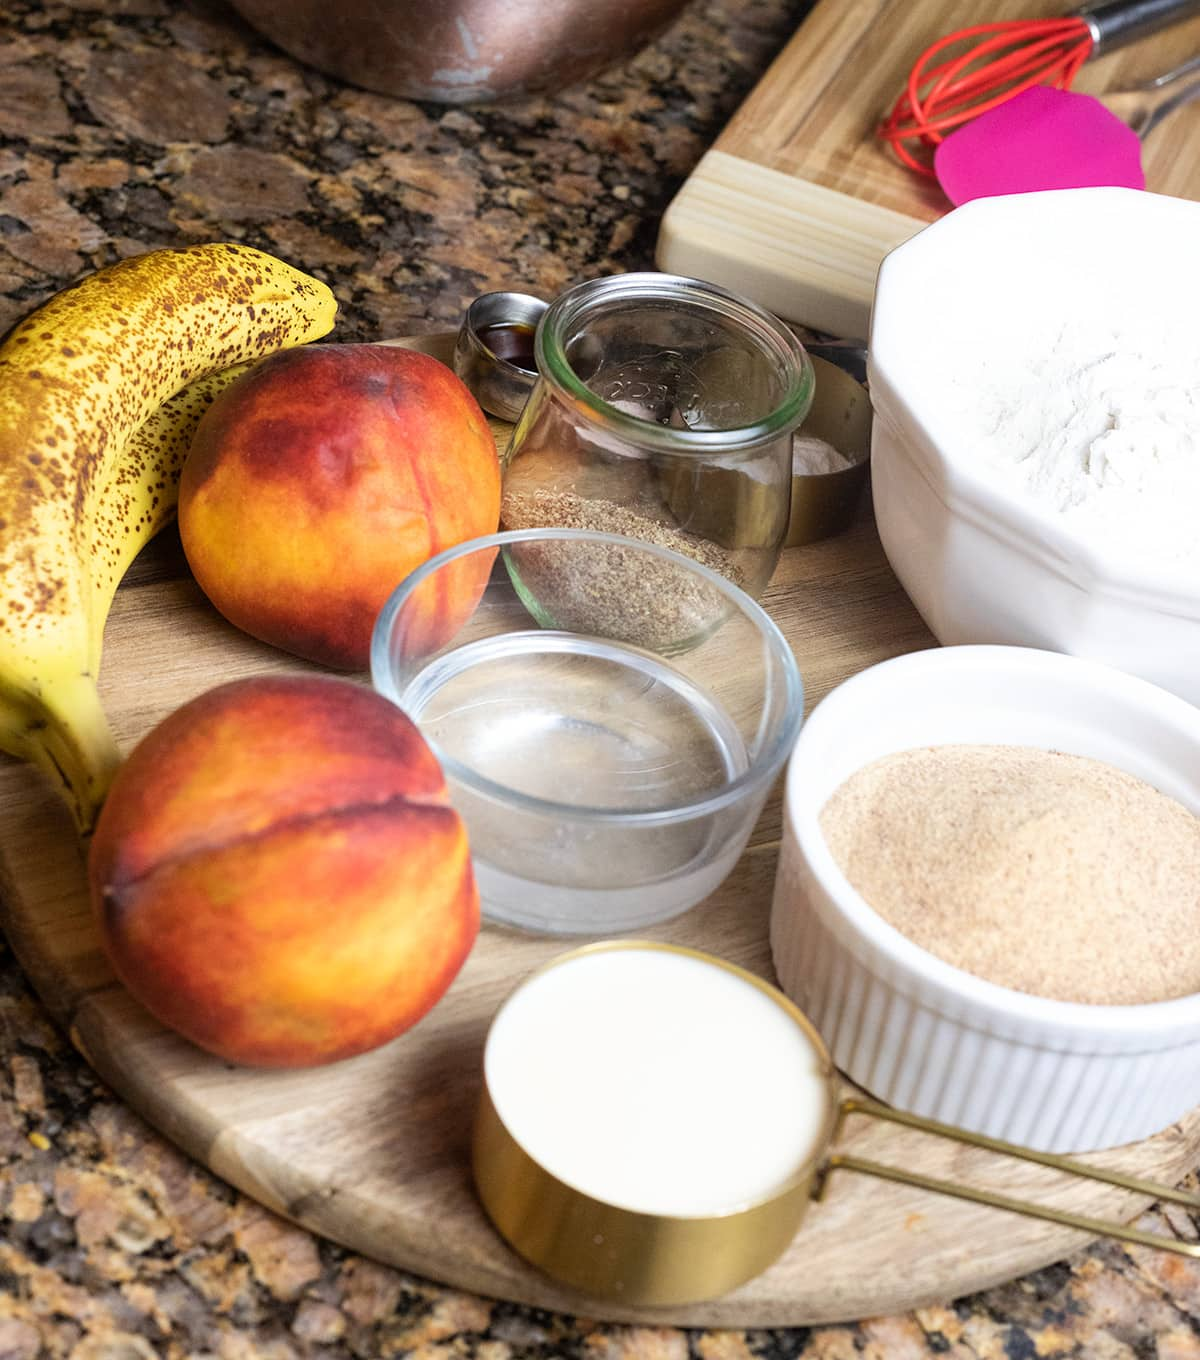 Ingredients for banana peach bread on a round cutting board